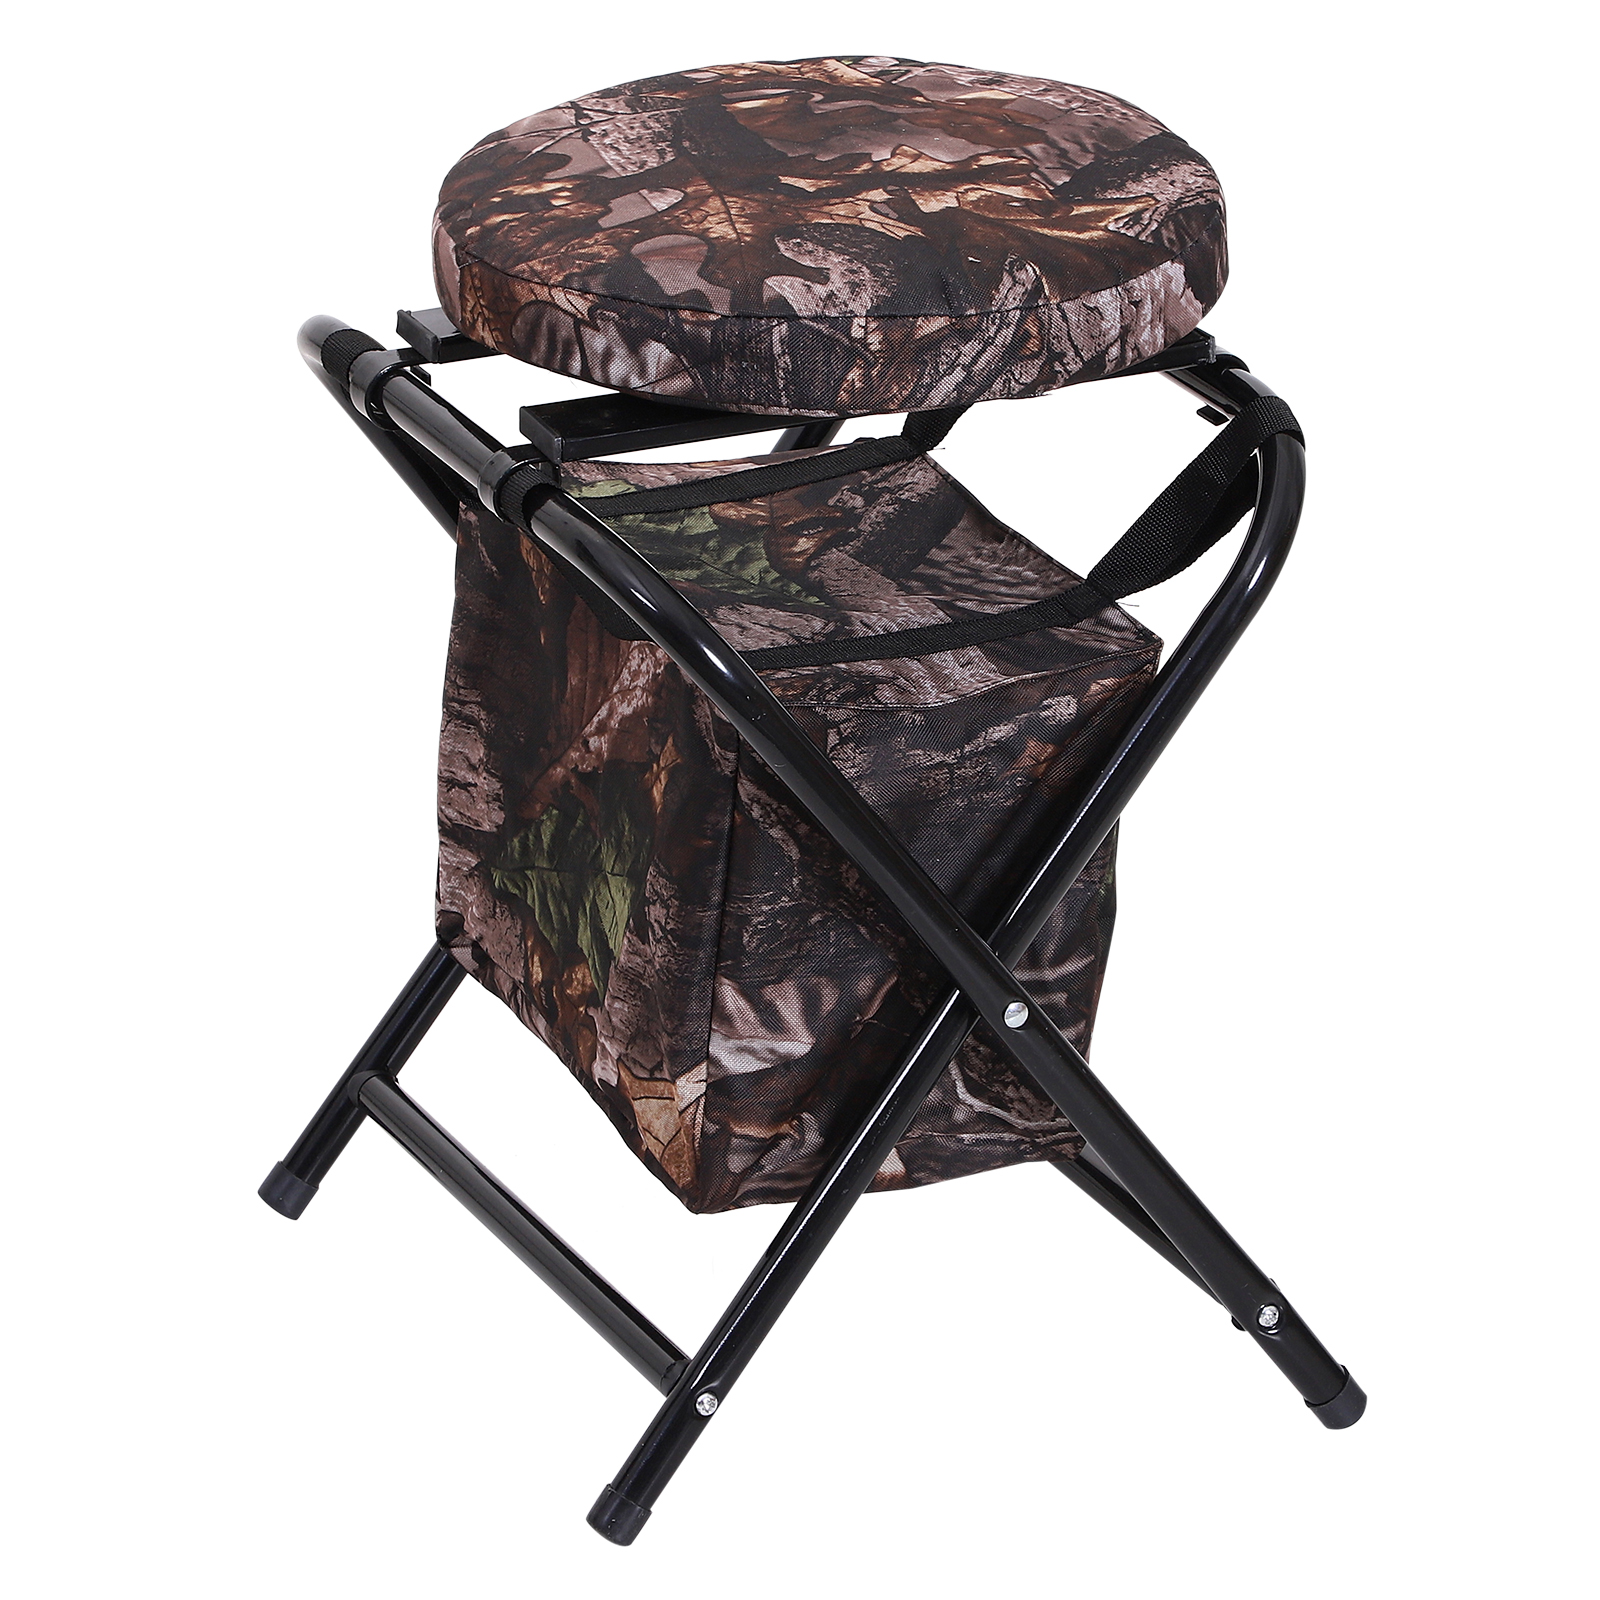 Outsunny-Folding-Rotating-Travel-Camping-Stool-for-Adults-w-Storage-Bag thumbnail 11